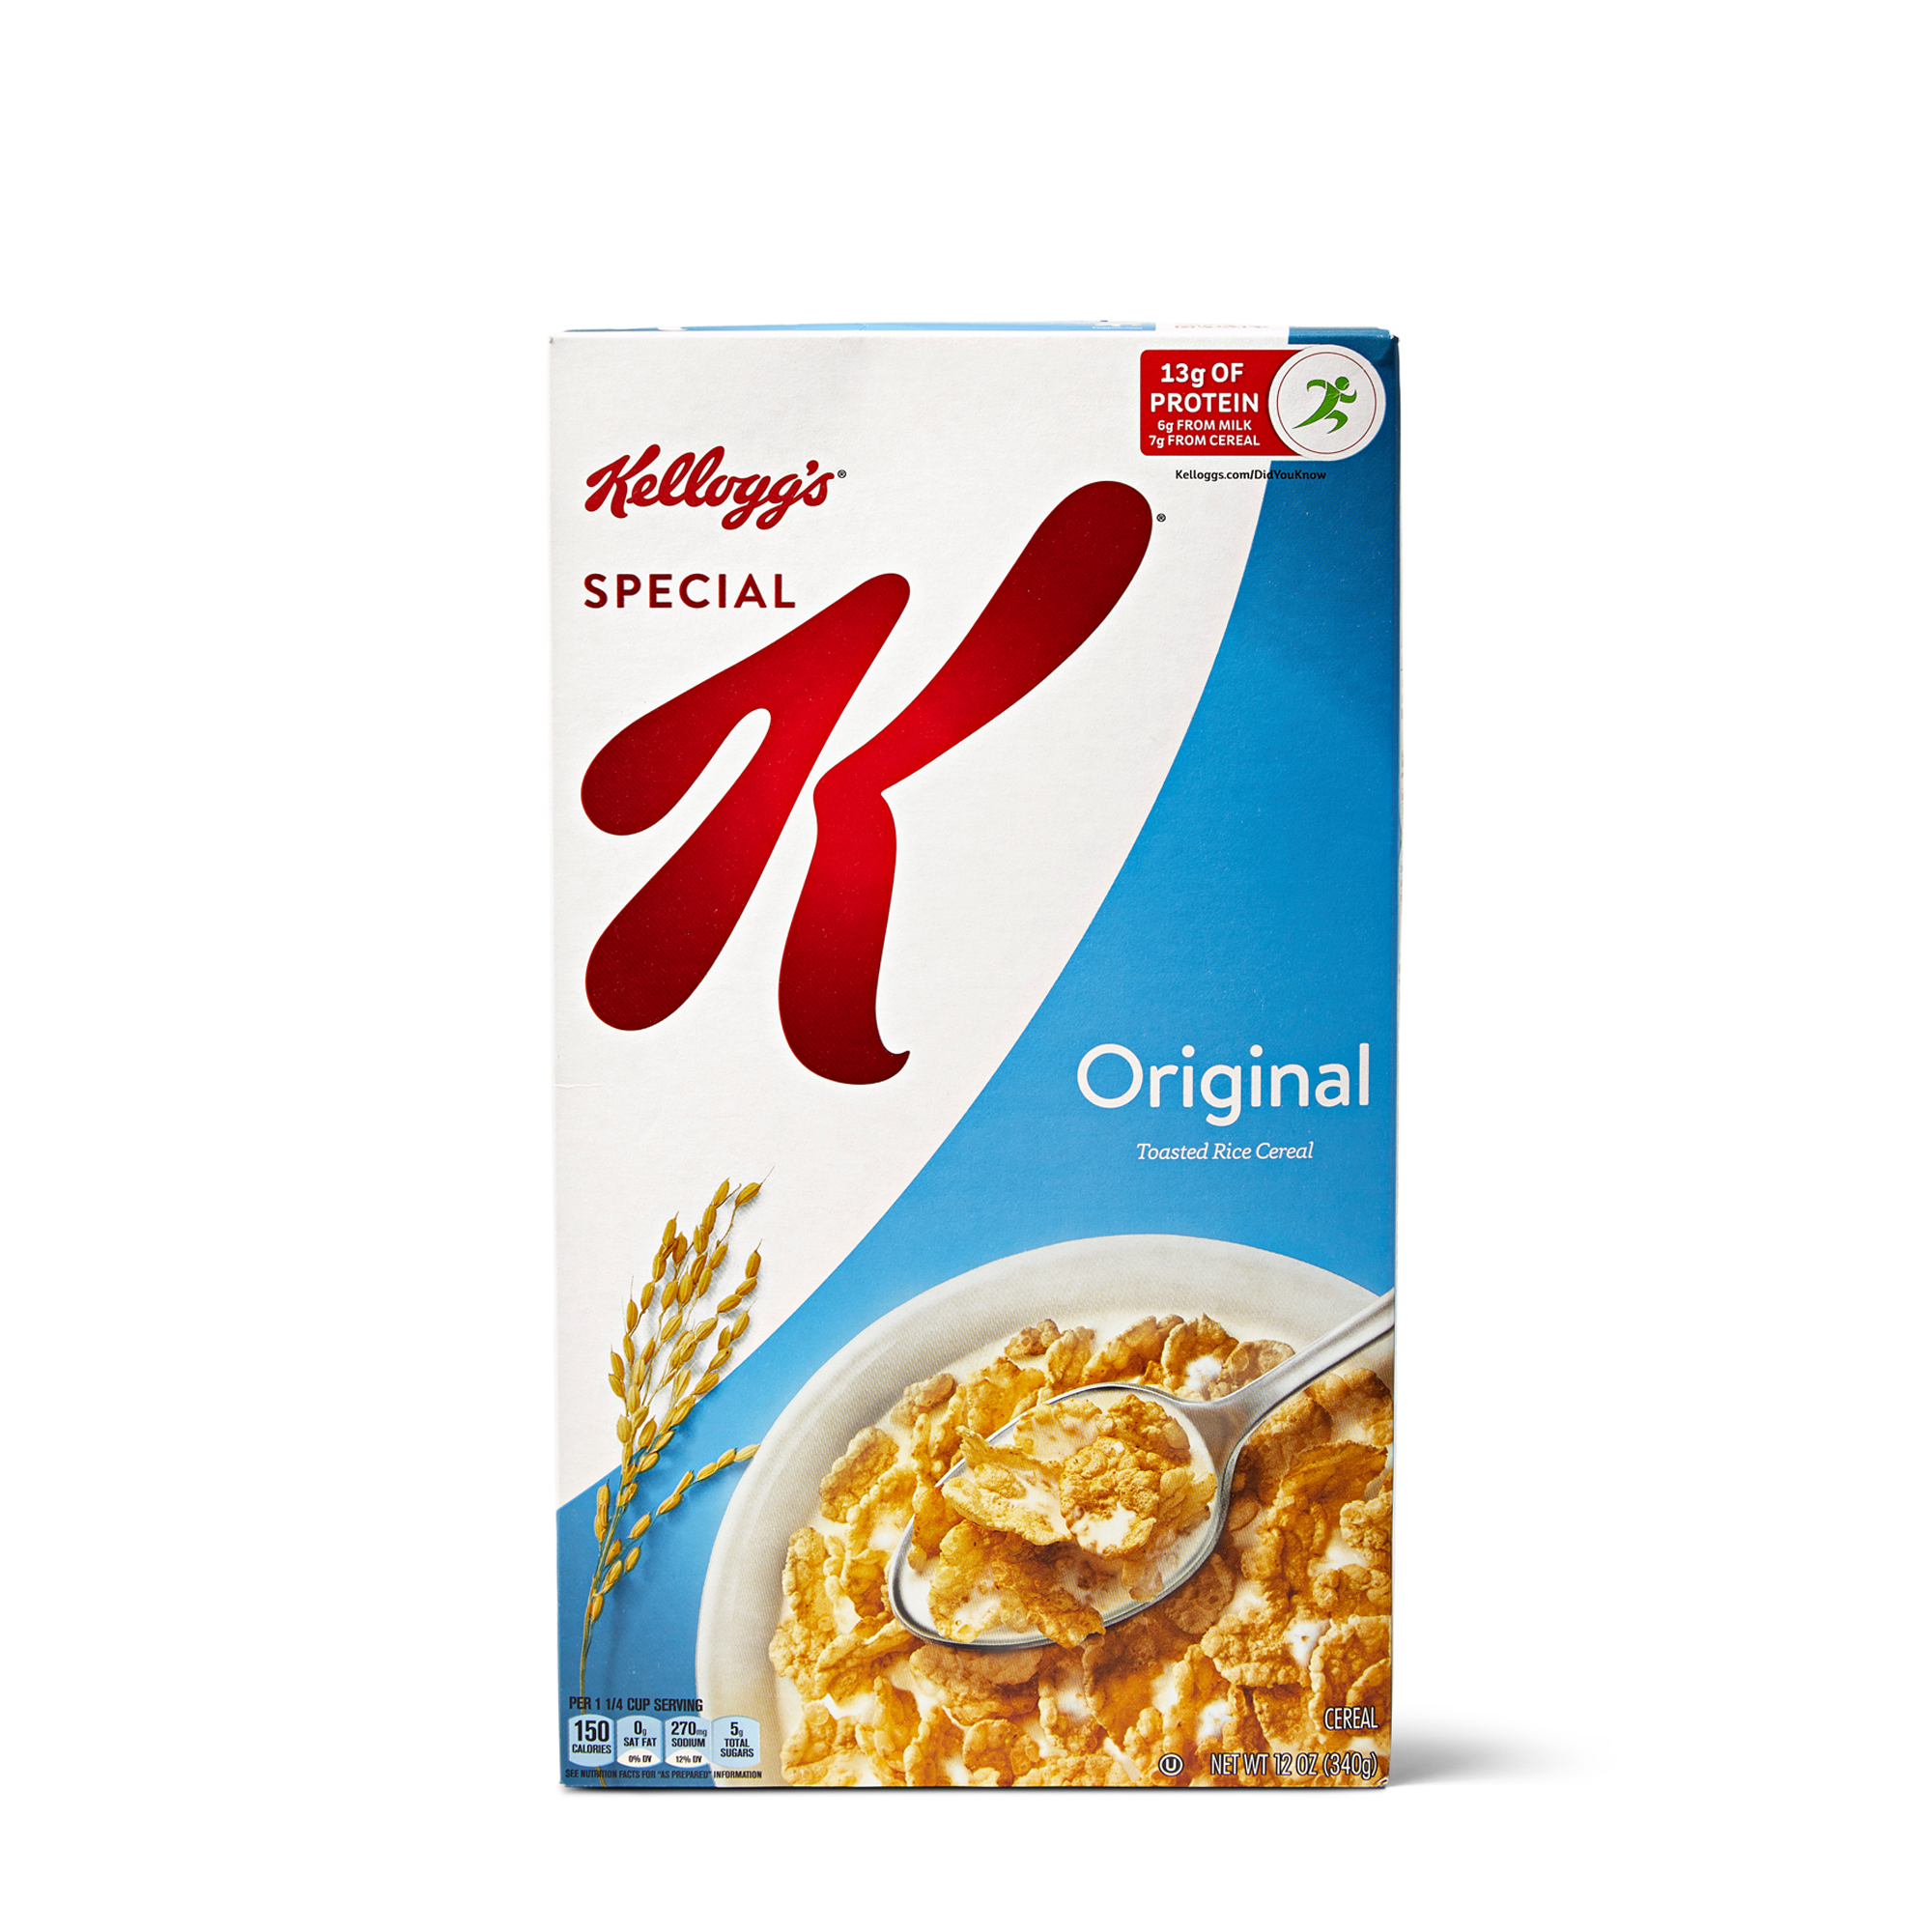 Special K box